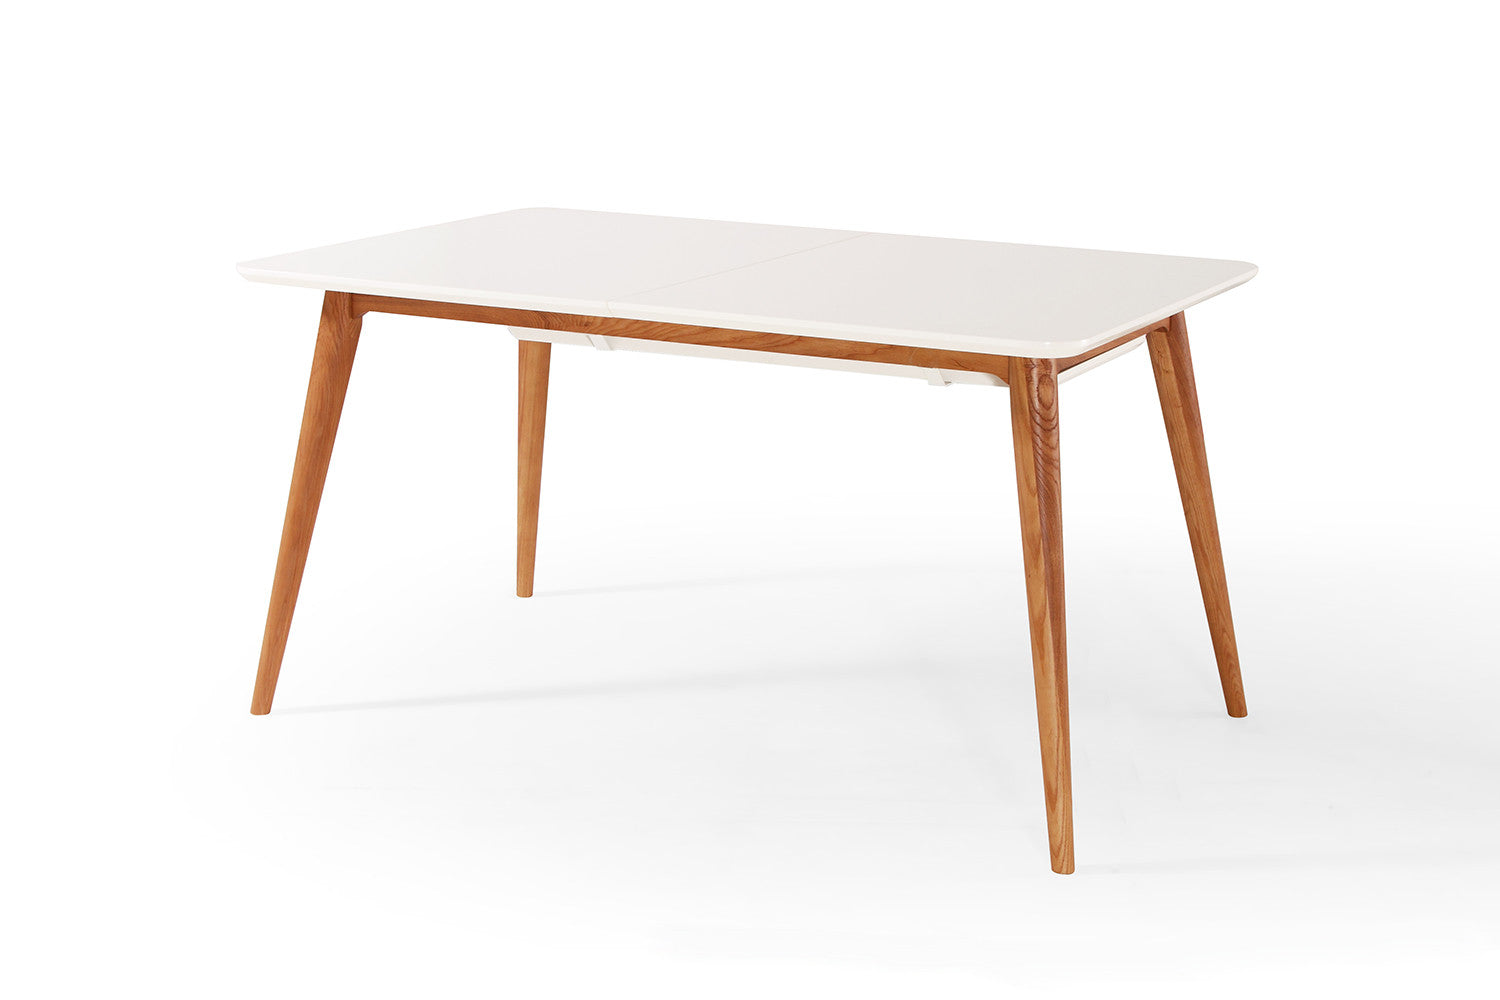 Table de salle manger extensible scandinave wyna dewarens for Table de salle a manger extensible